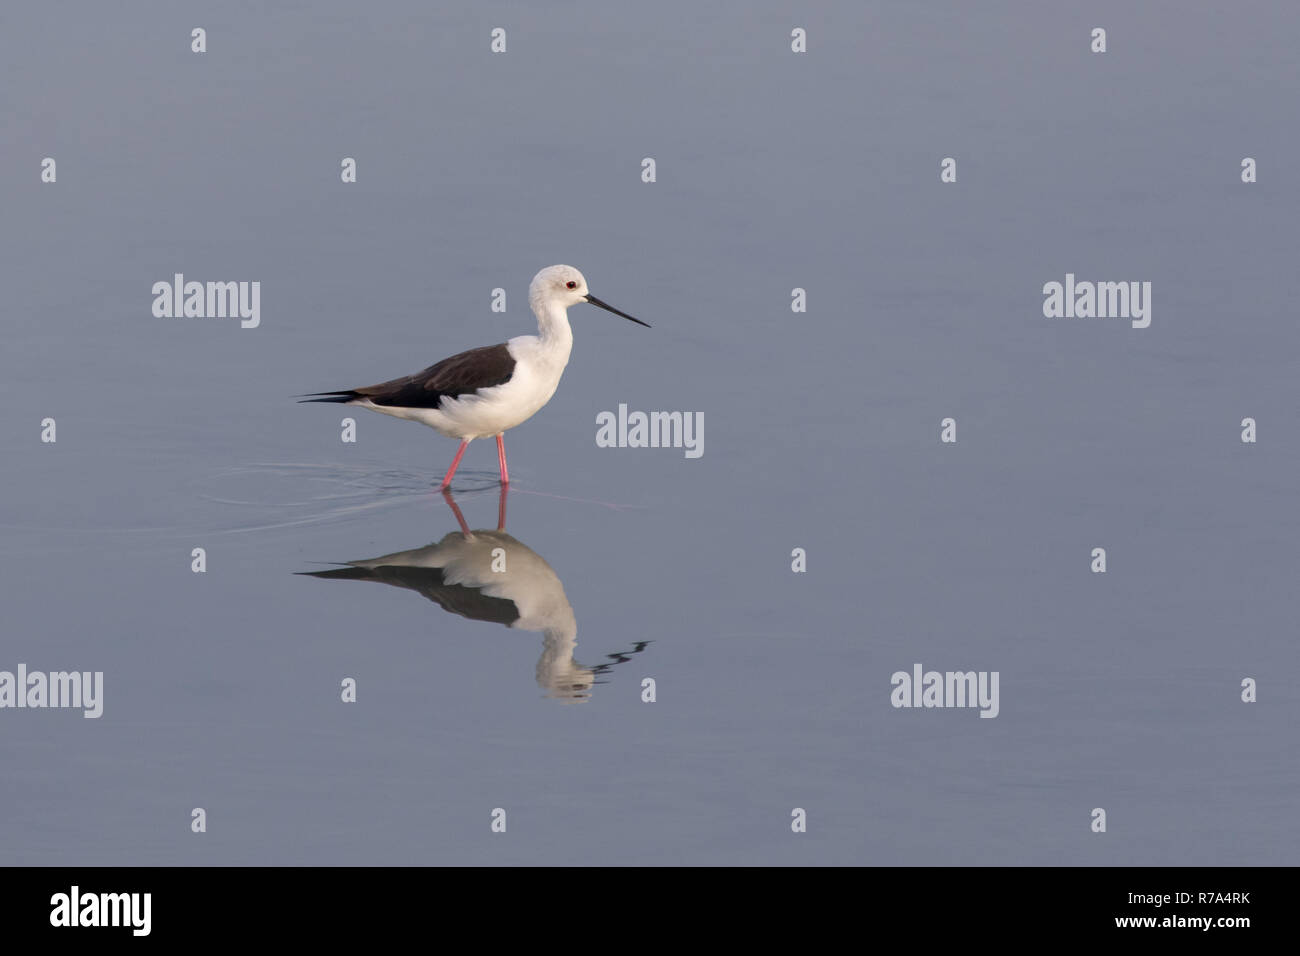 A black-winged stilt searches for food in the calm, shallow waters in Ras al Khor, Dubai wetlands. Stock Photo